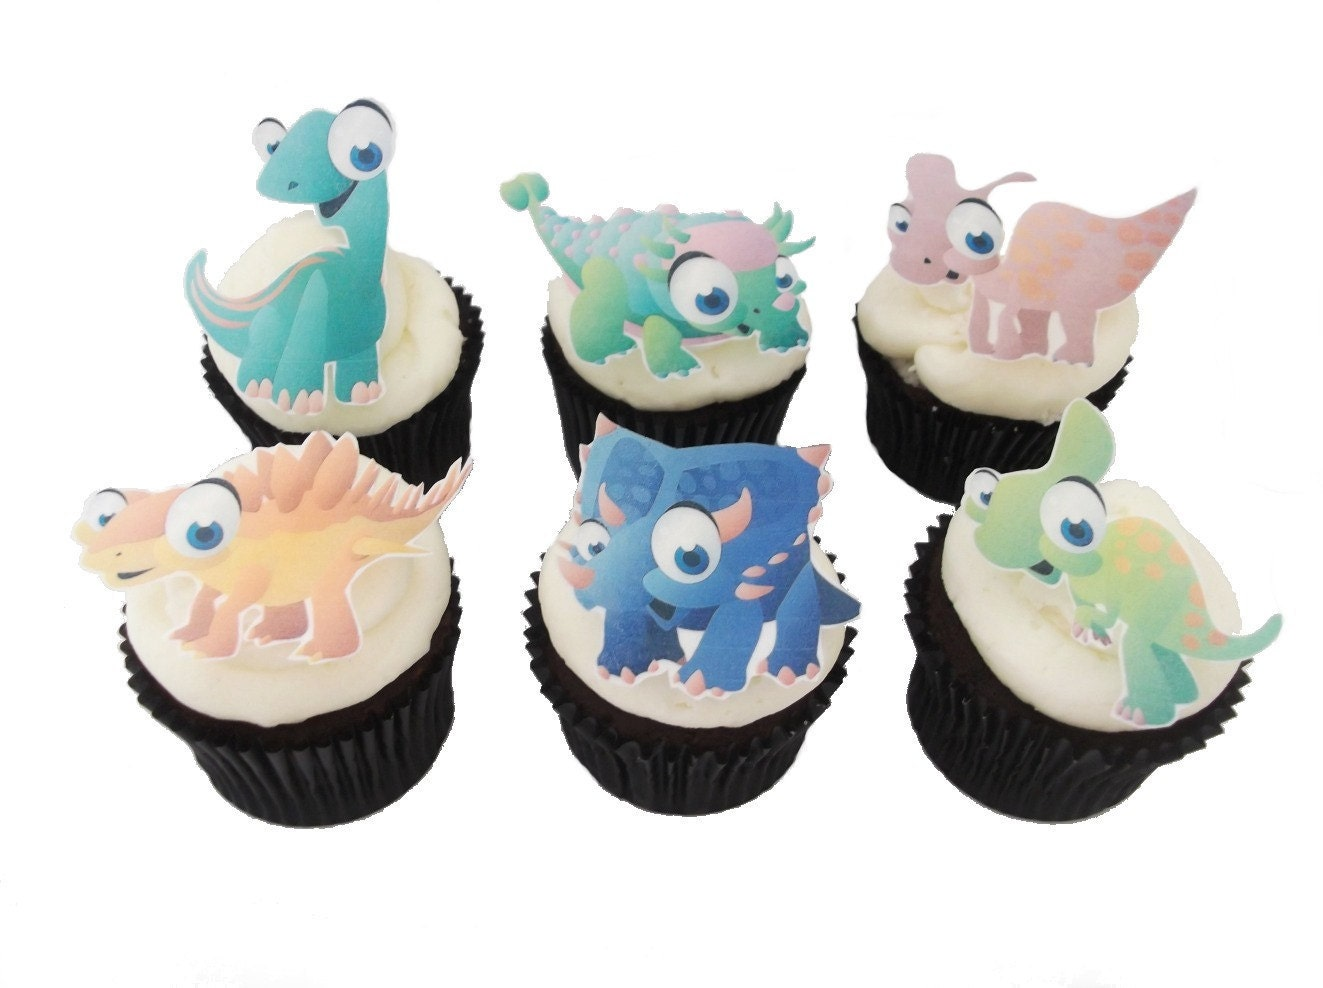 12 EDIBLE DINOSAUR Cupcake Toppers Theme by incrEDIBLEtoppers